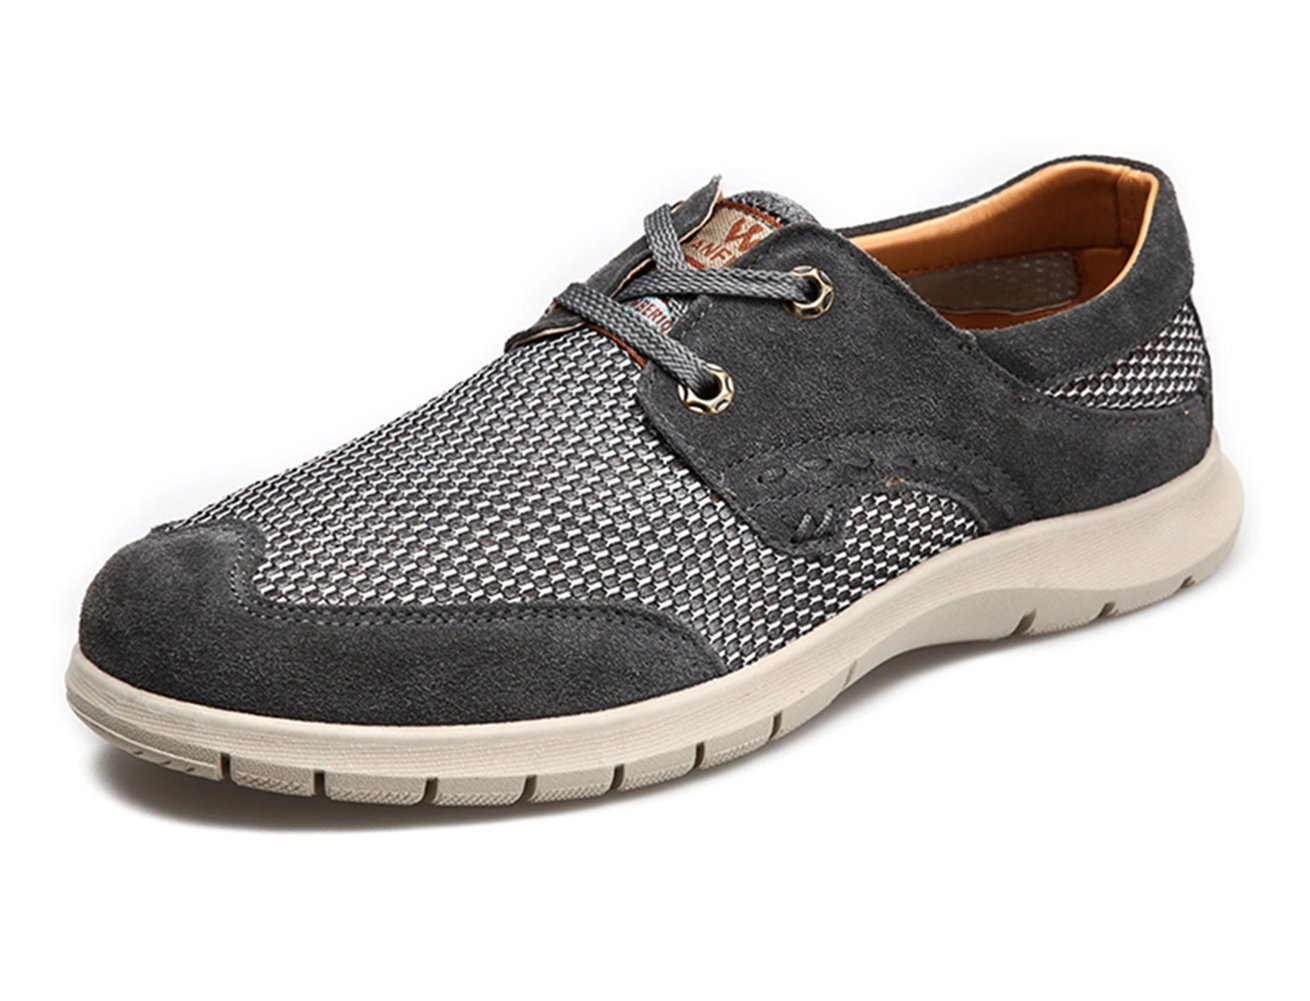 Men Shoes - Sport Walking Casual Most Comfortable Fashion For Your Outdoor Active - Mesh, Breathable